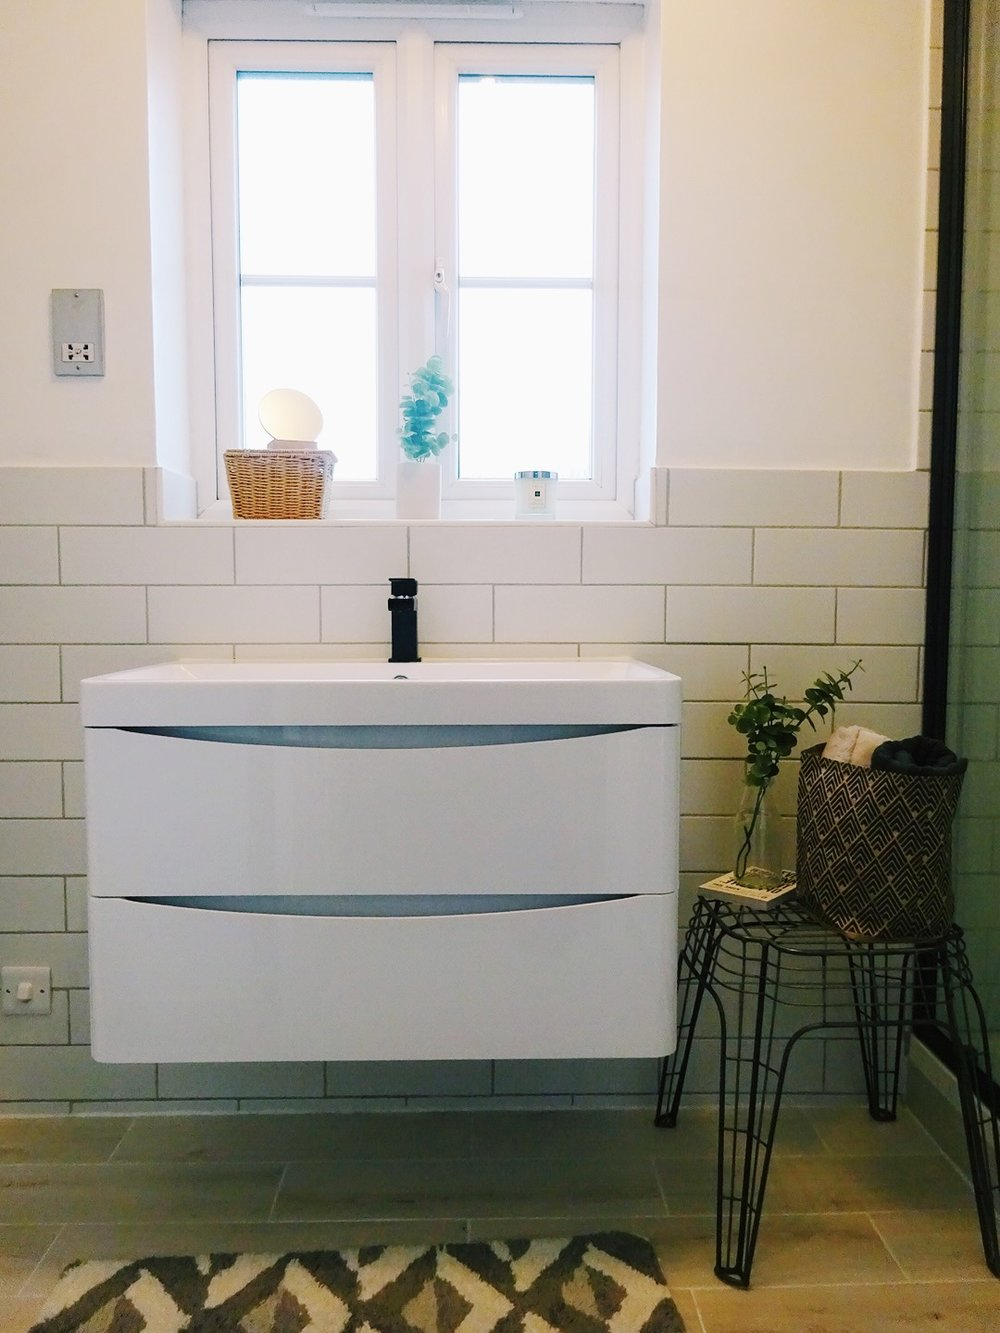 The wide sink is fantastic, and the storage underneath means I can hide all the bits and bobs that don't need to be seen. And even though the shower is much wider we still have enough space to fit the stool from Zara Home.